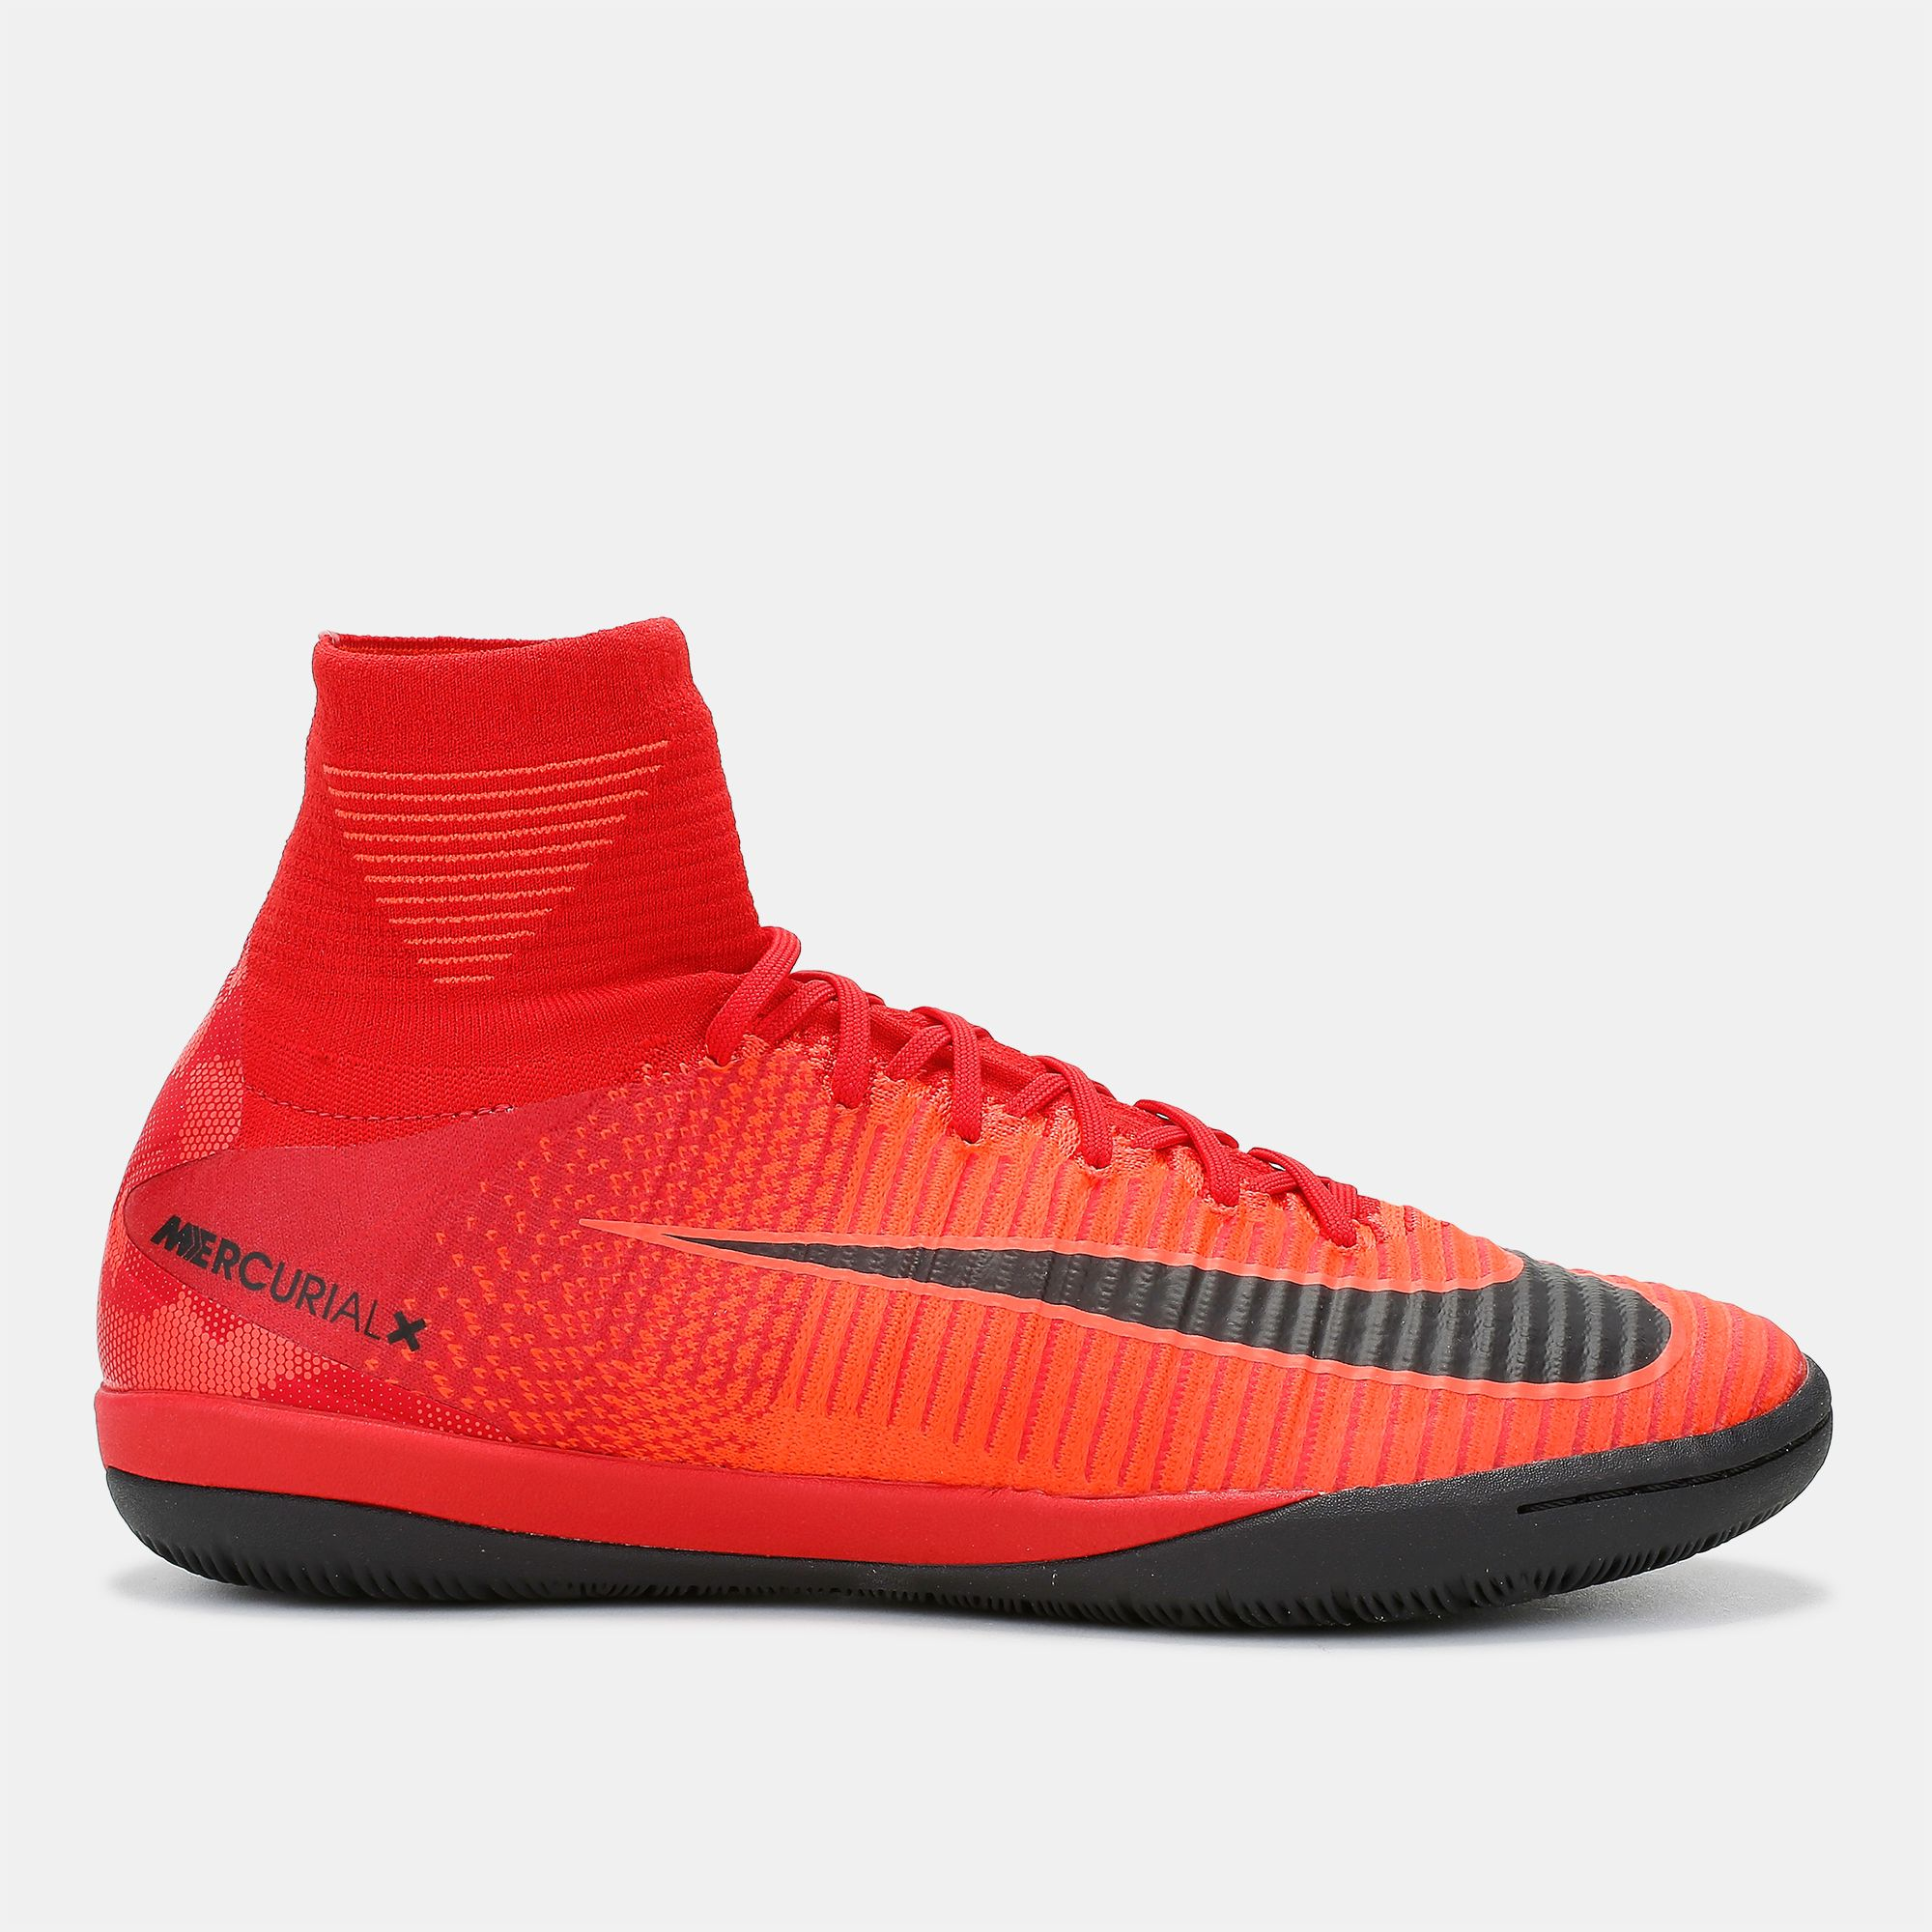 e770ac8ebfe4 greece nike mercurialx proximo ii indoor court shoe 980a2 a6faa